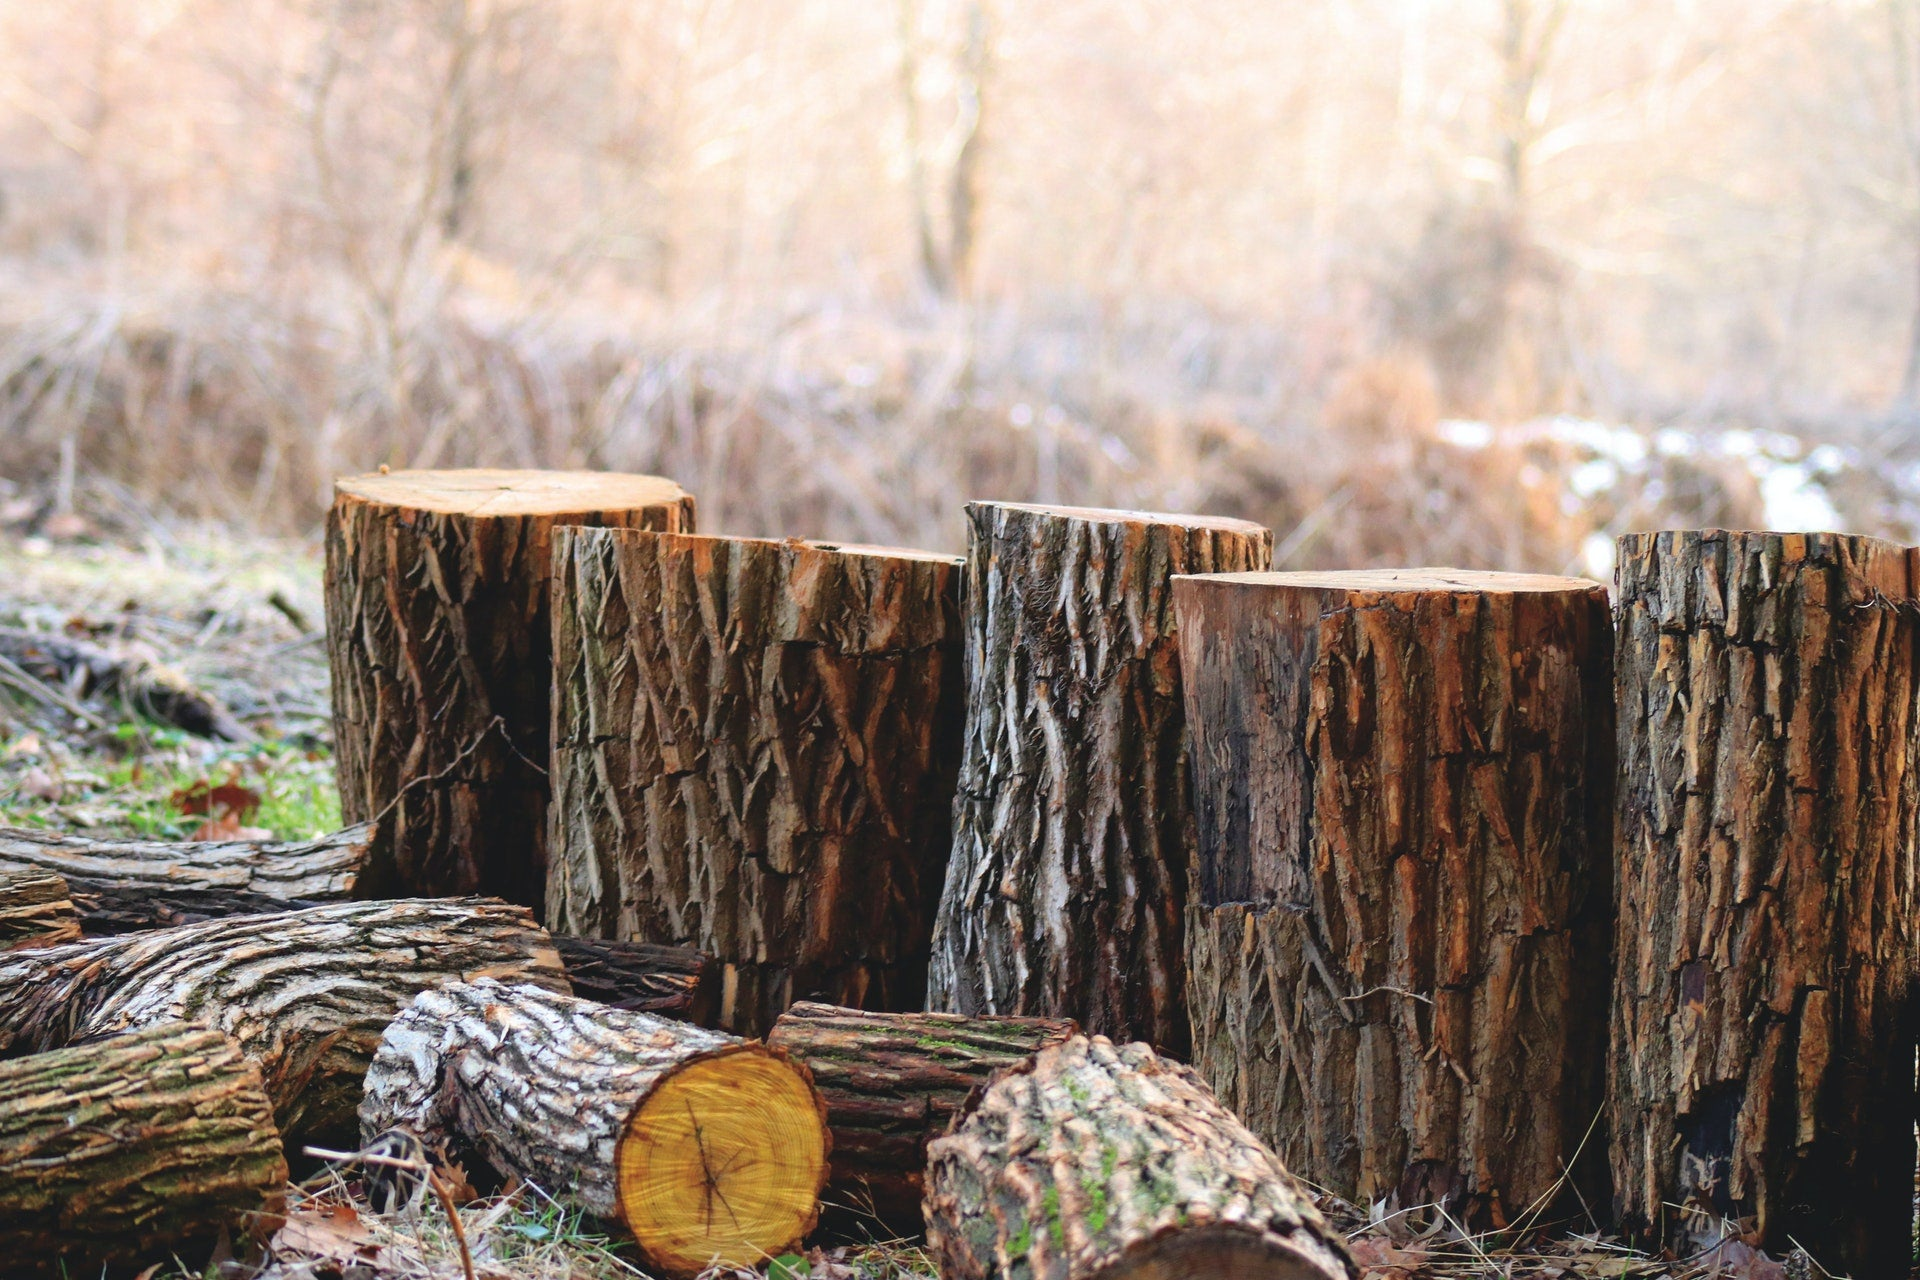 Logs for making hand crafted kitchen tools